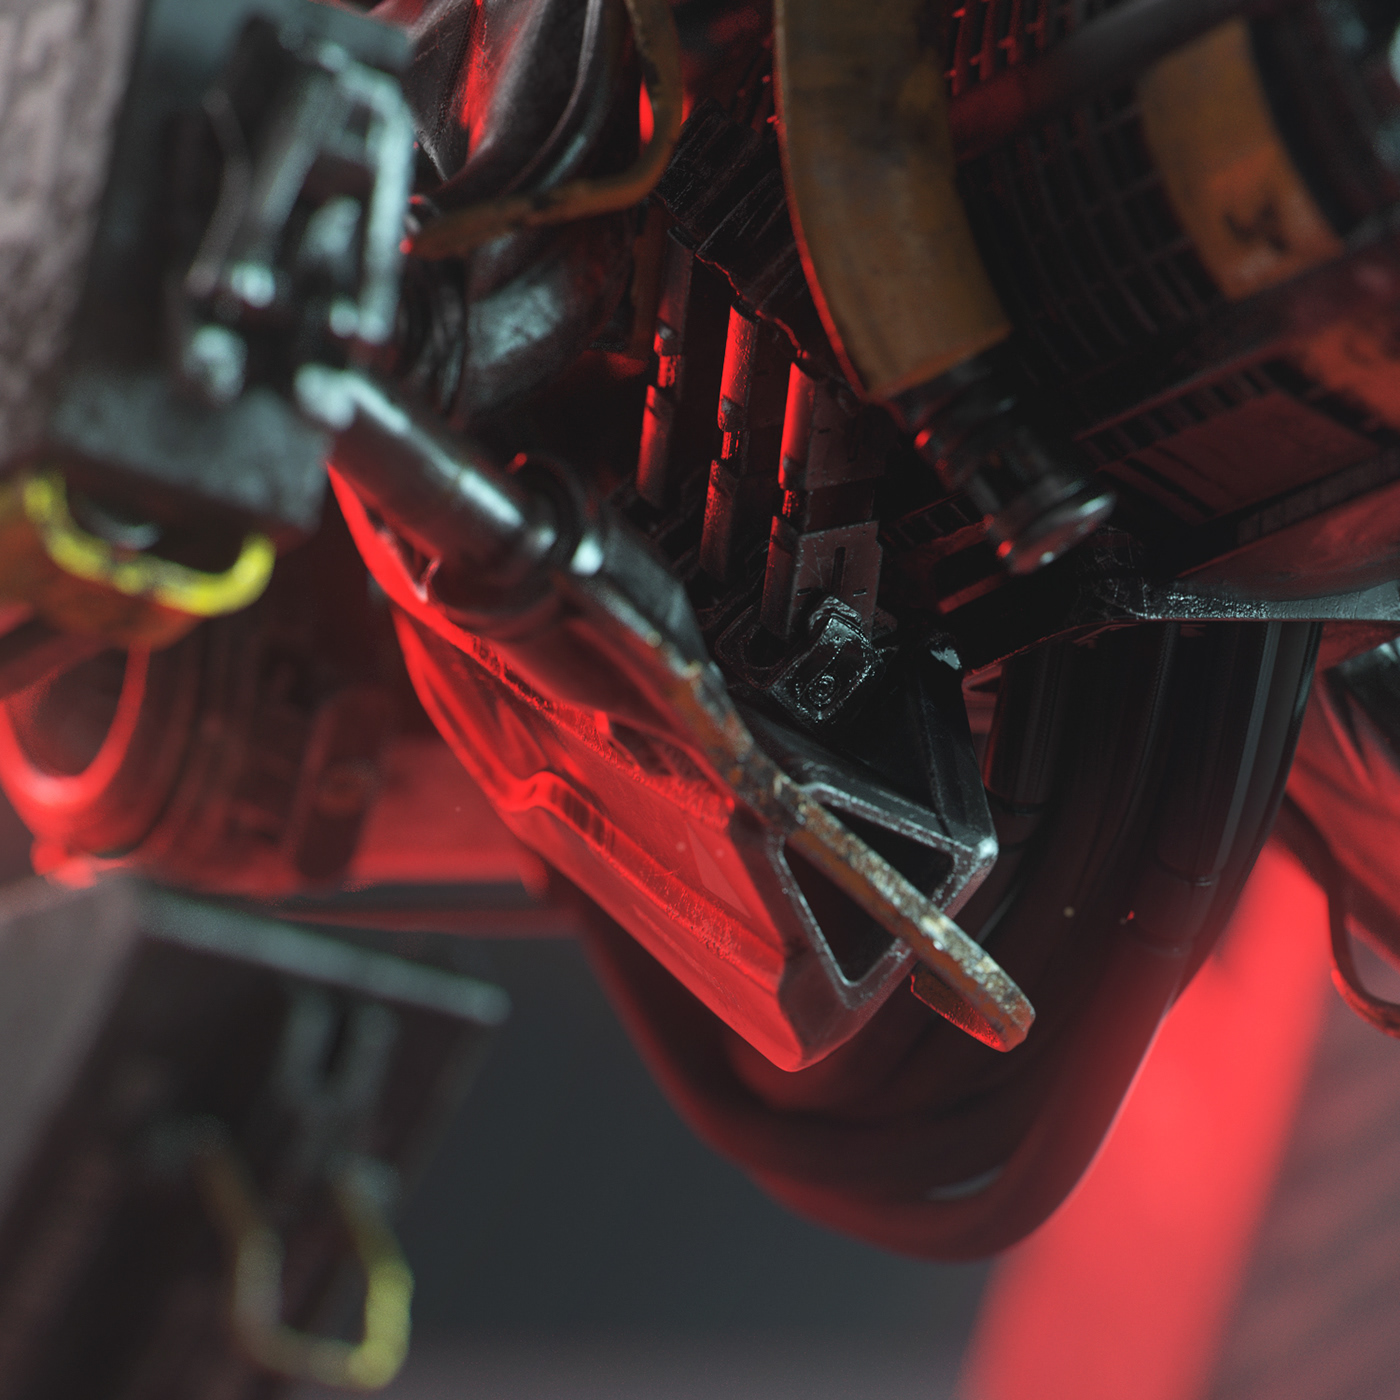 houdini redshift vfx mecha substance 3D robot